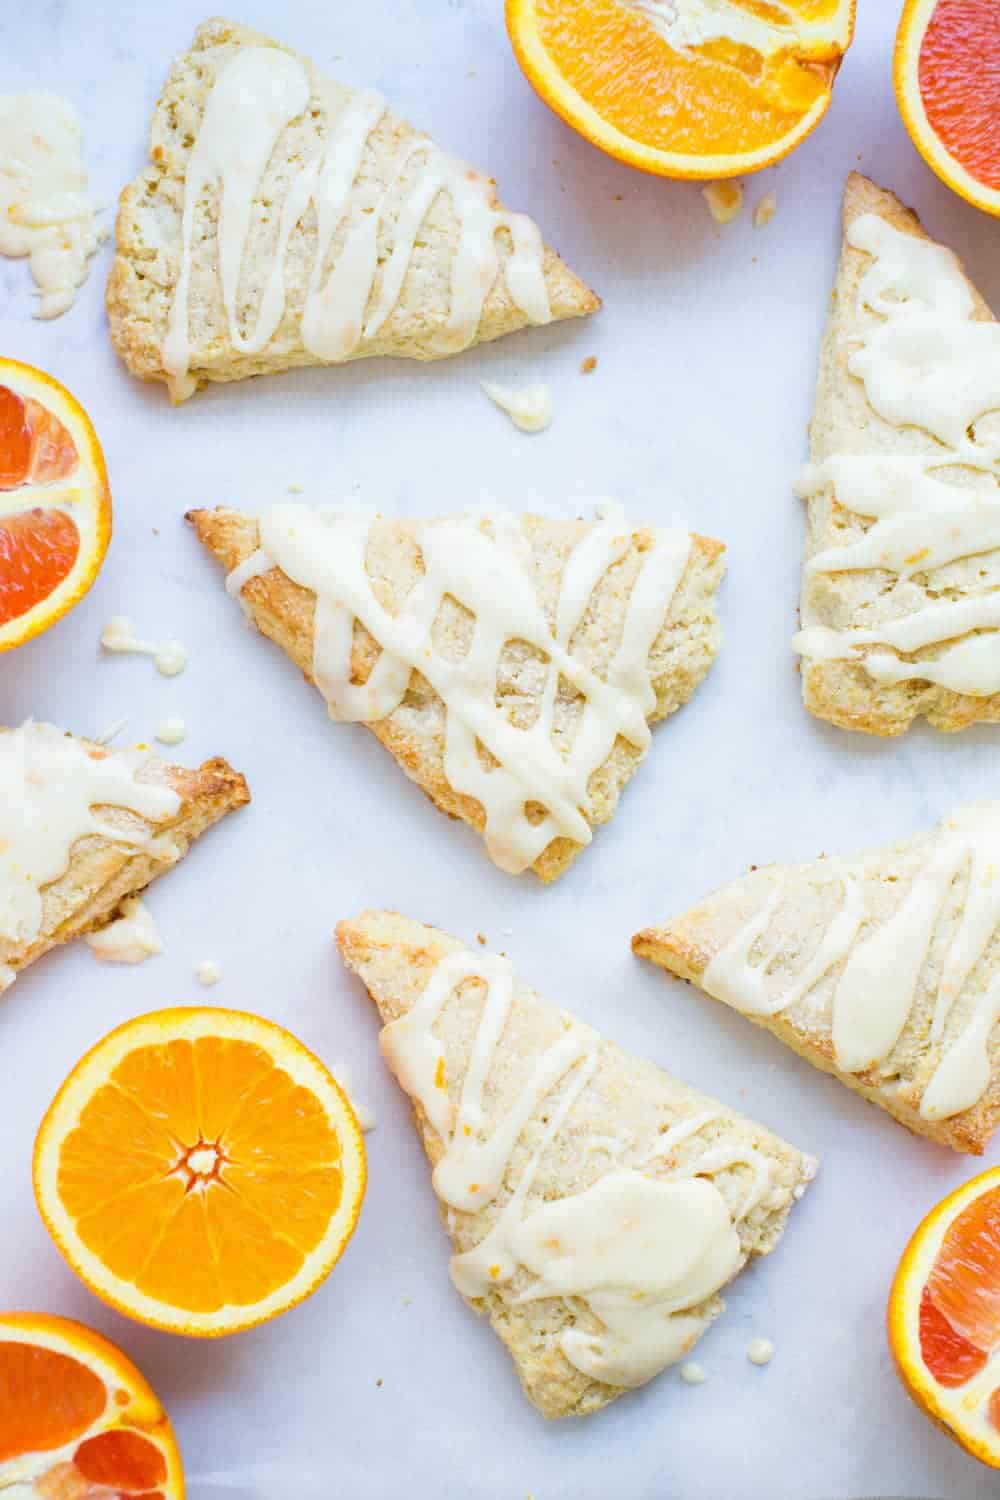 glazed orange scones on a white counter with fresh sliced oranges